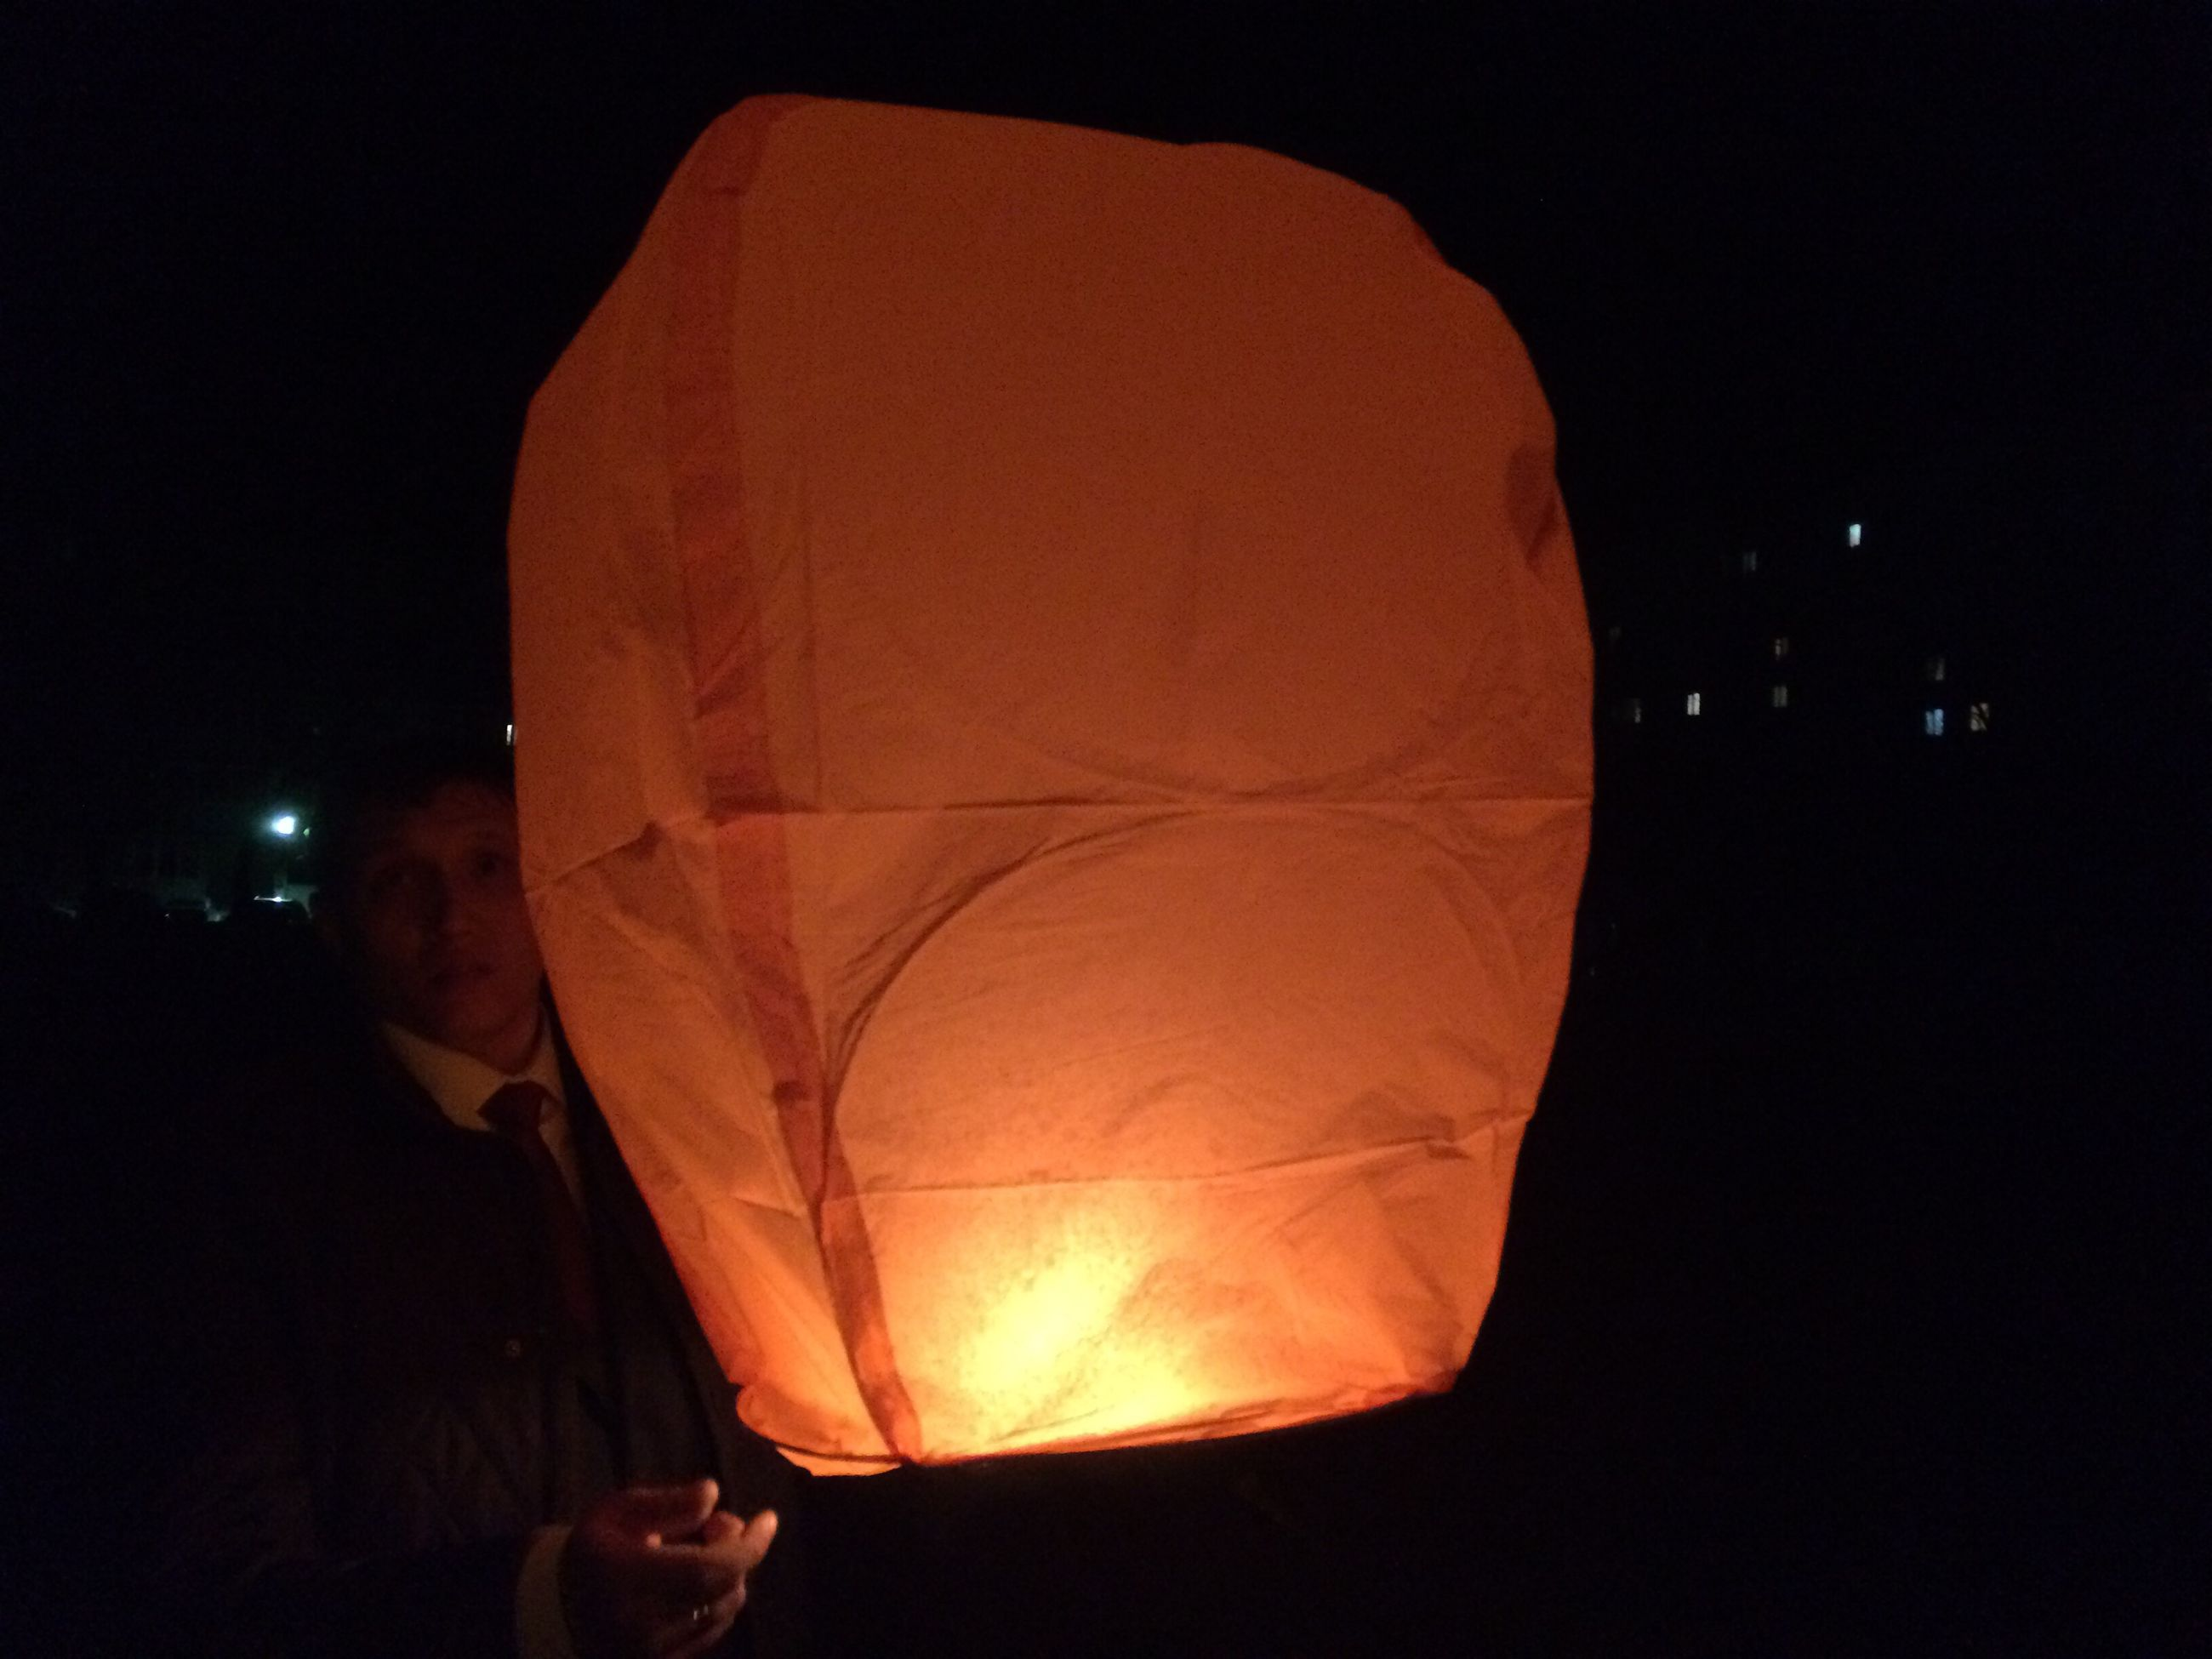 night, illuminated, orange color, moon, no people, nature, astronomy, sky, close-up, outdoors, paper lantern, hot air balloon, solar eclipse